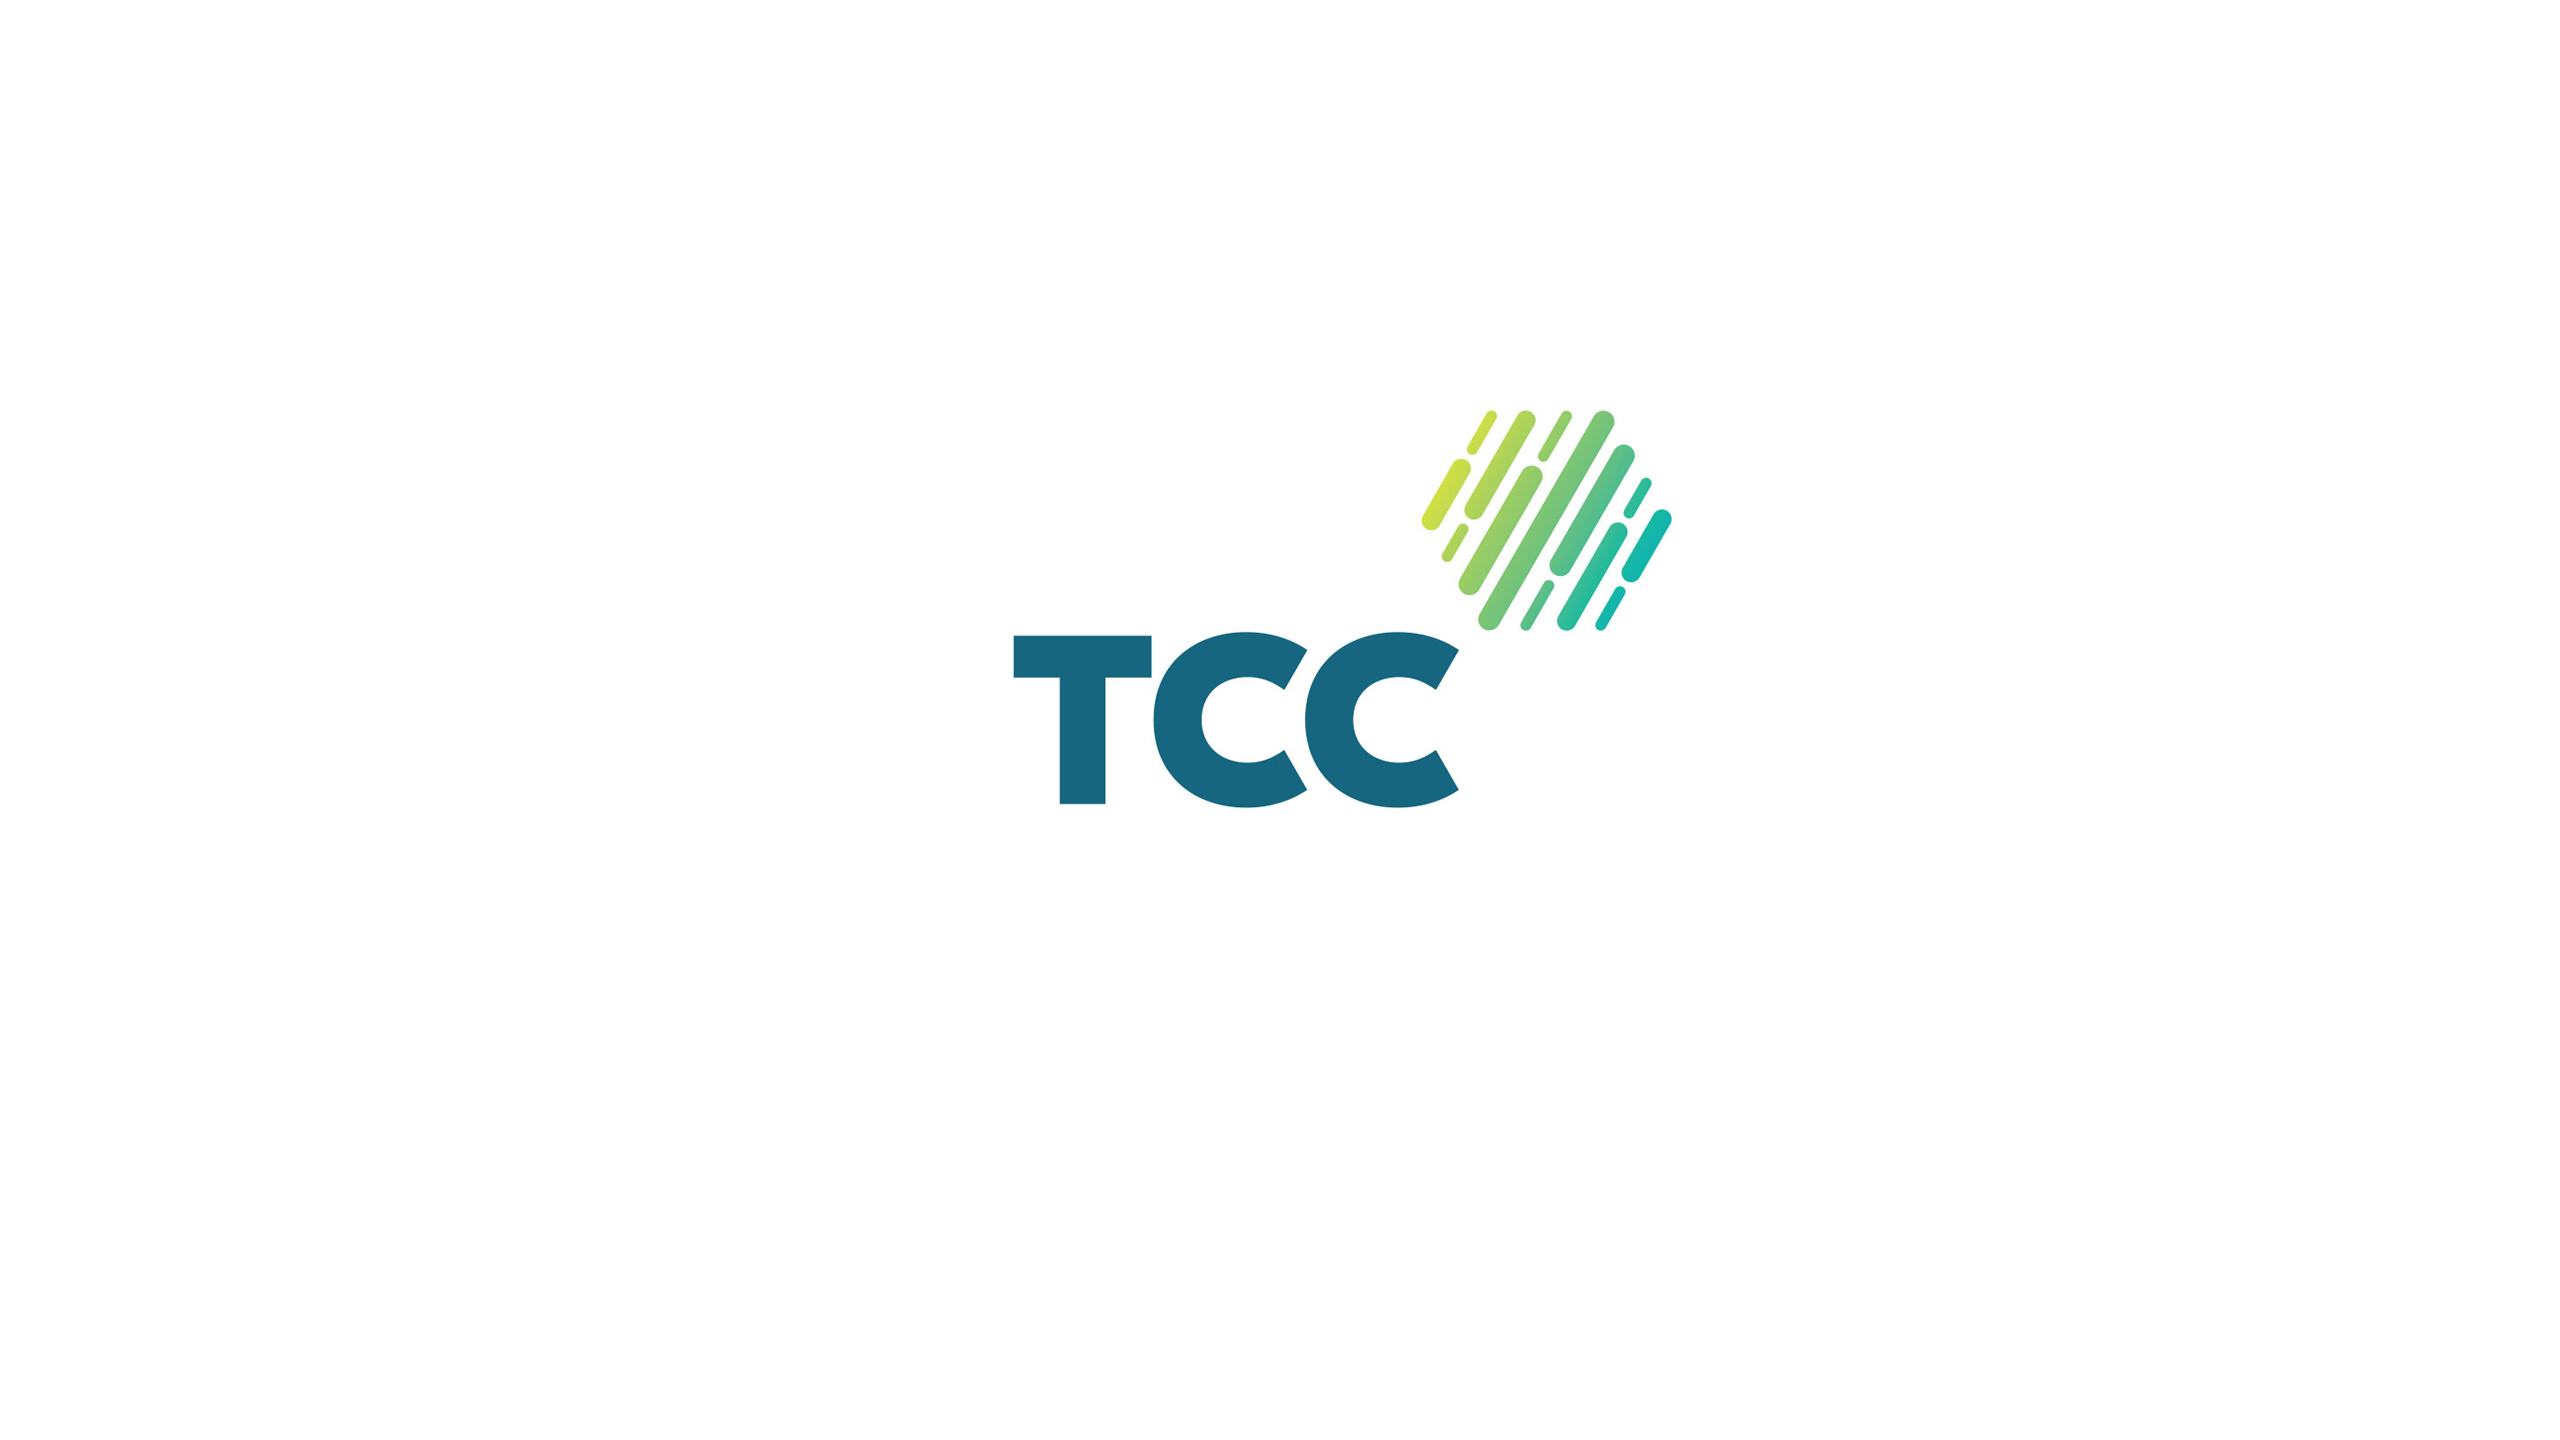 TCC After Logo